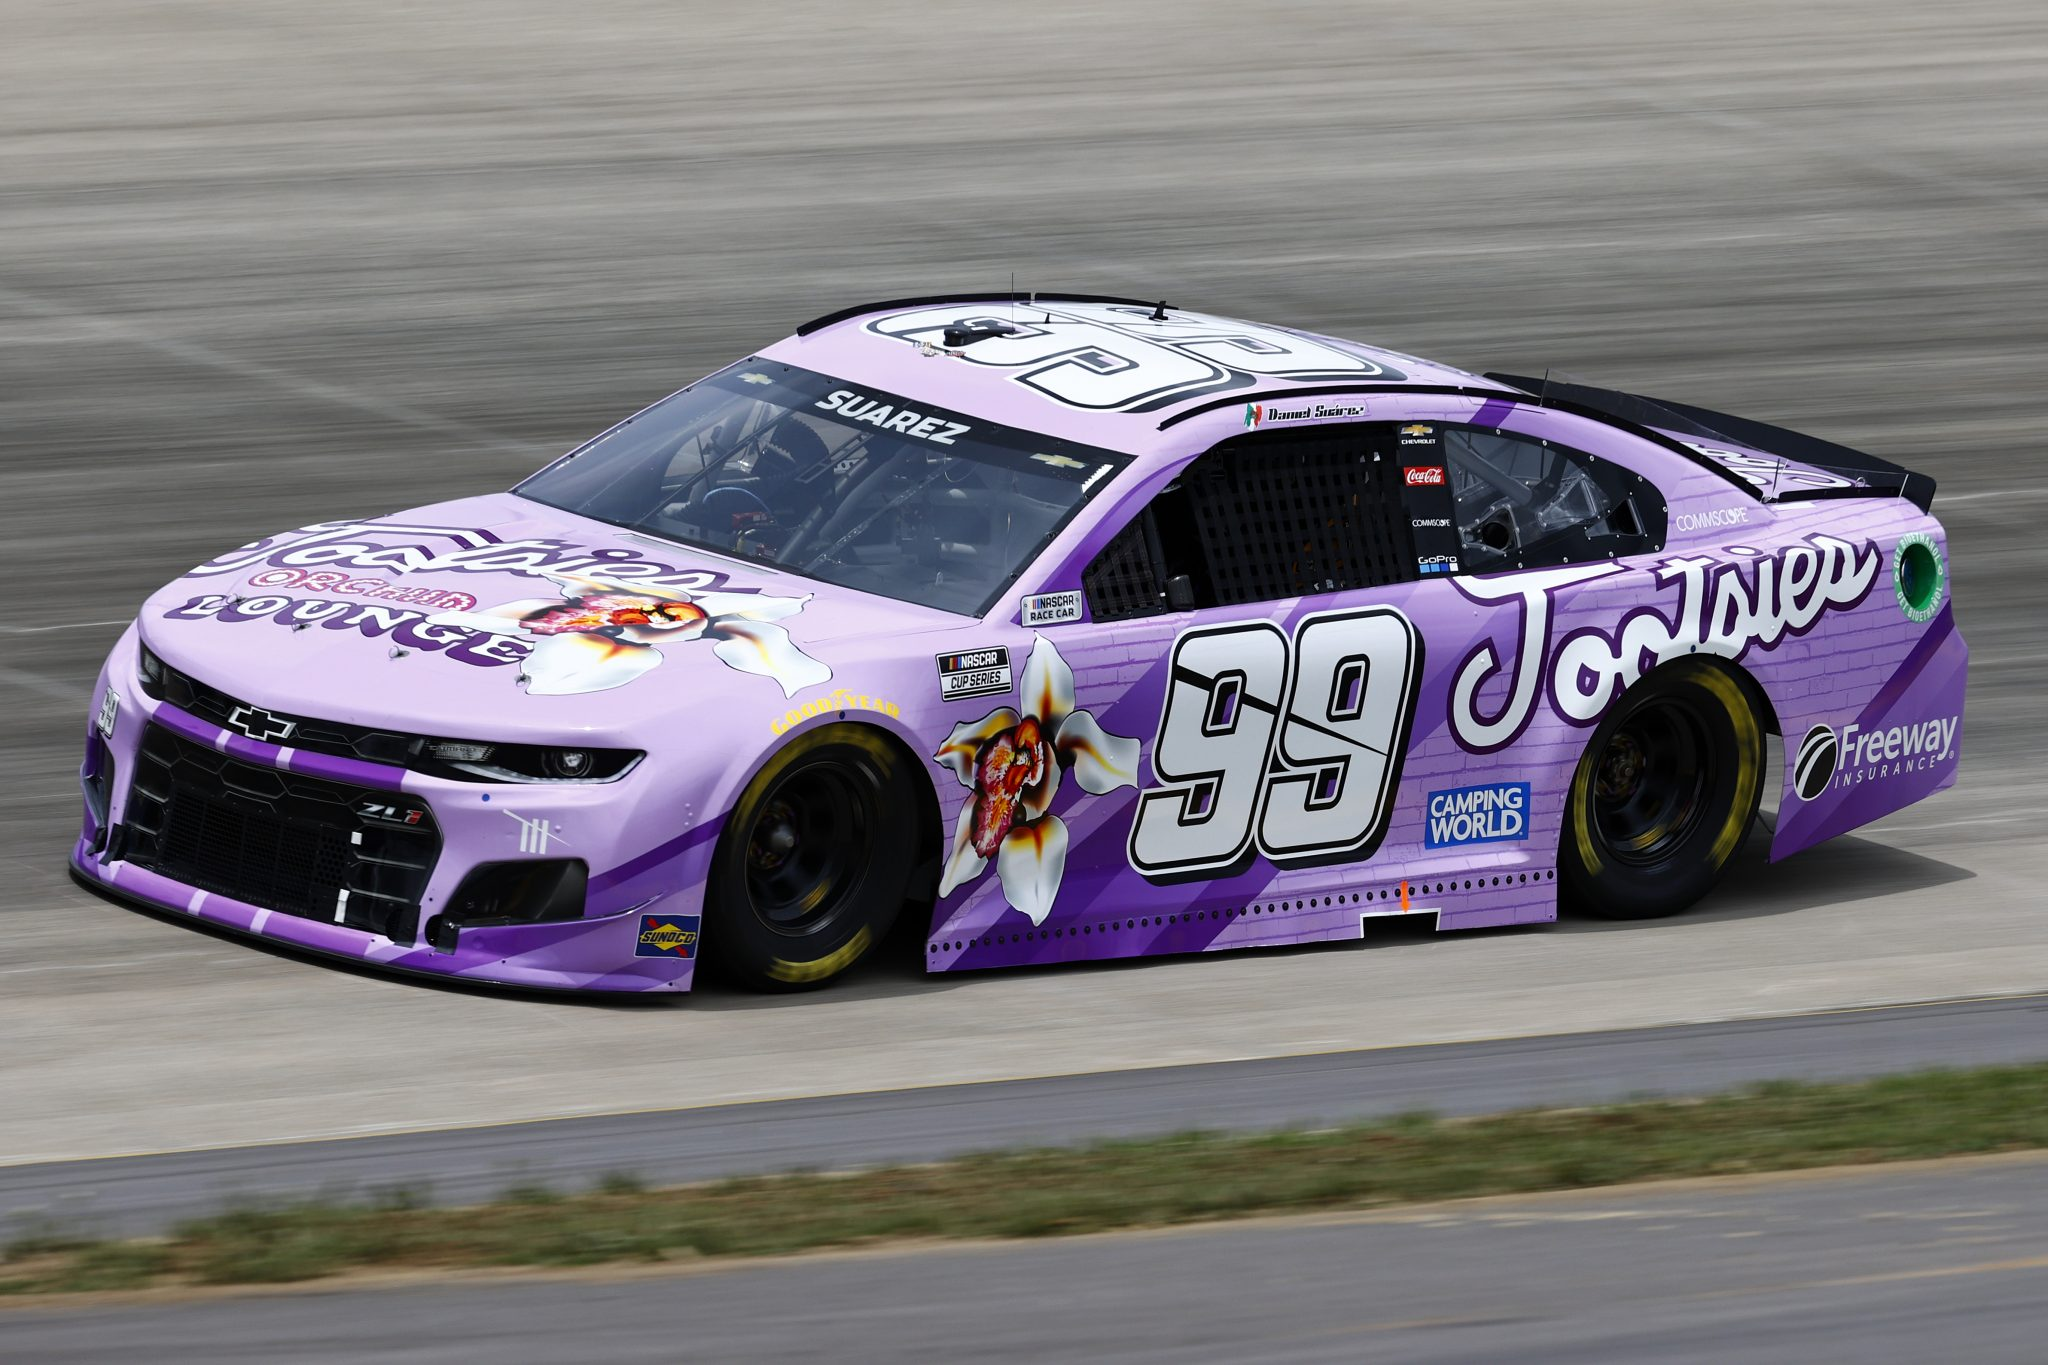 LEBANON, TENNESSEE - JUNE 19: Daniel Suarez, driver of the #99 Tootsies Orchid Lounge Chevrolet, drives during practice for the NASCAR Cup Series Ally 400 at Nashville Superspeedway on June 19, 2021 in Lebanon, Tennessee. (Photo by Jared C. Tilton/Getty Images)   Getty Images